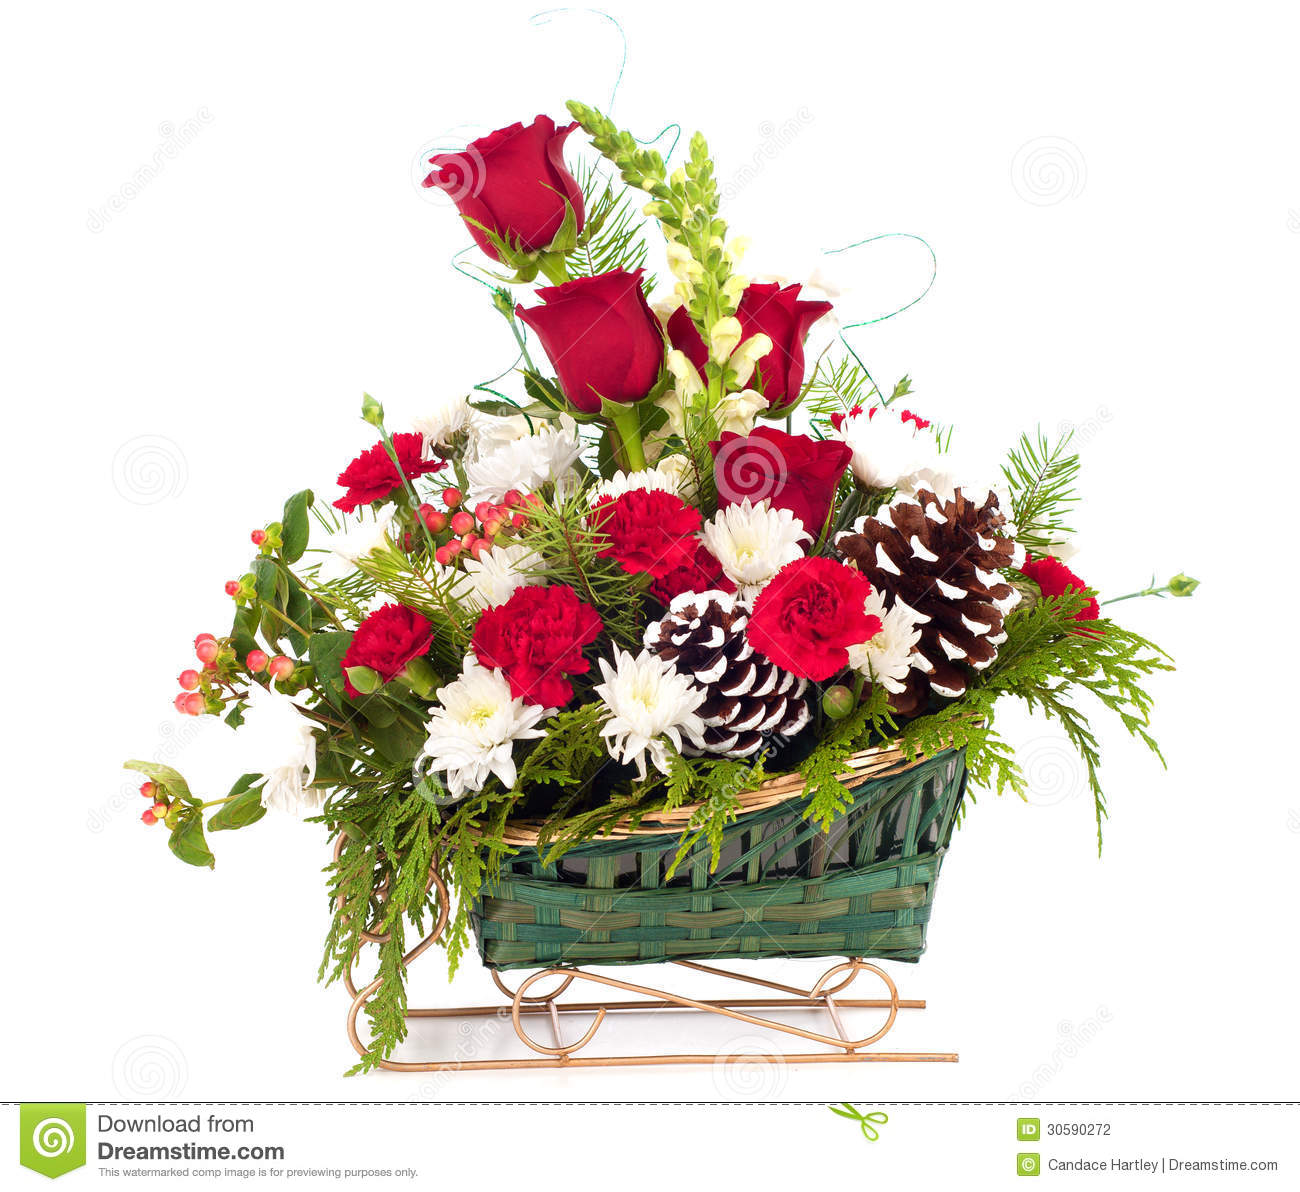 ... with pine cones all in a green sleigh basket with white background